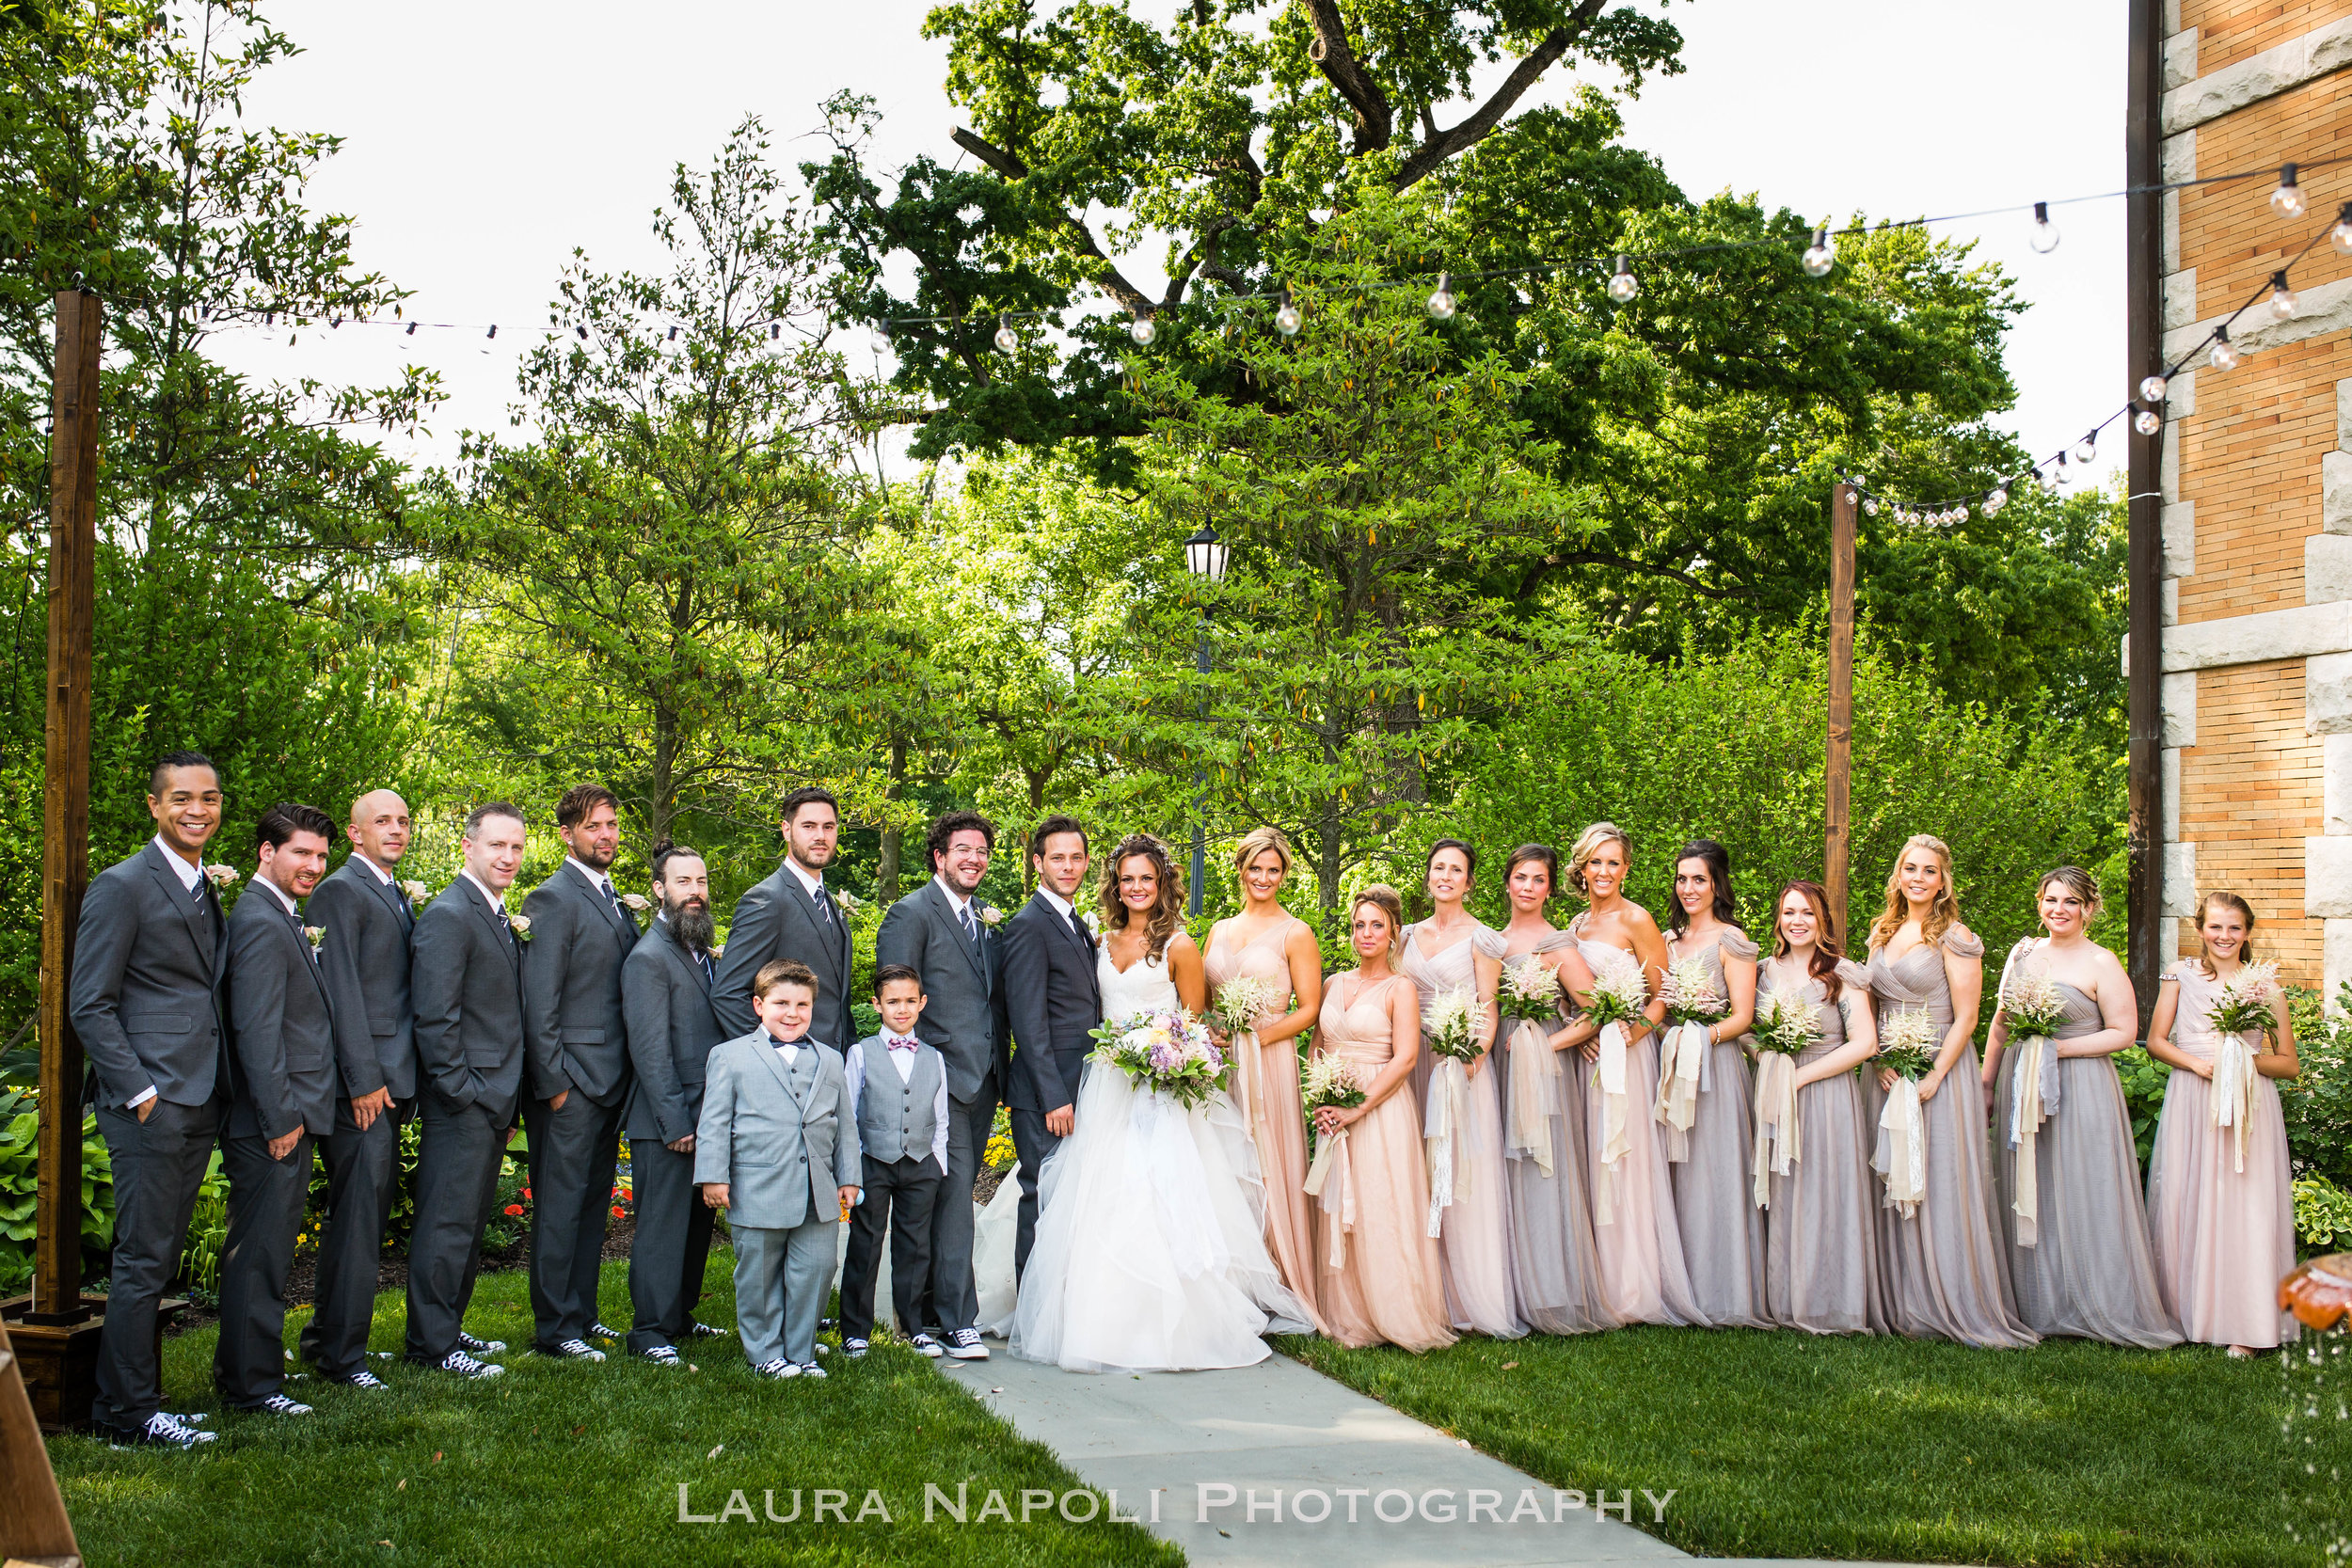 cairnwoodestateweddingsalvagedrentalsbrynathenpaweddingphotographer-15.jpg